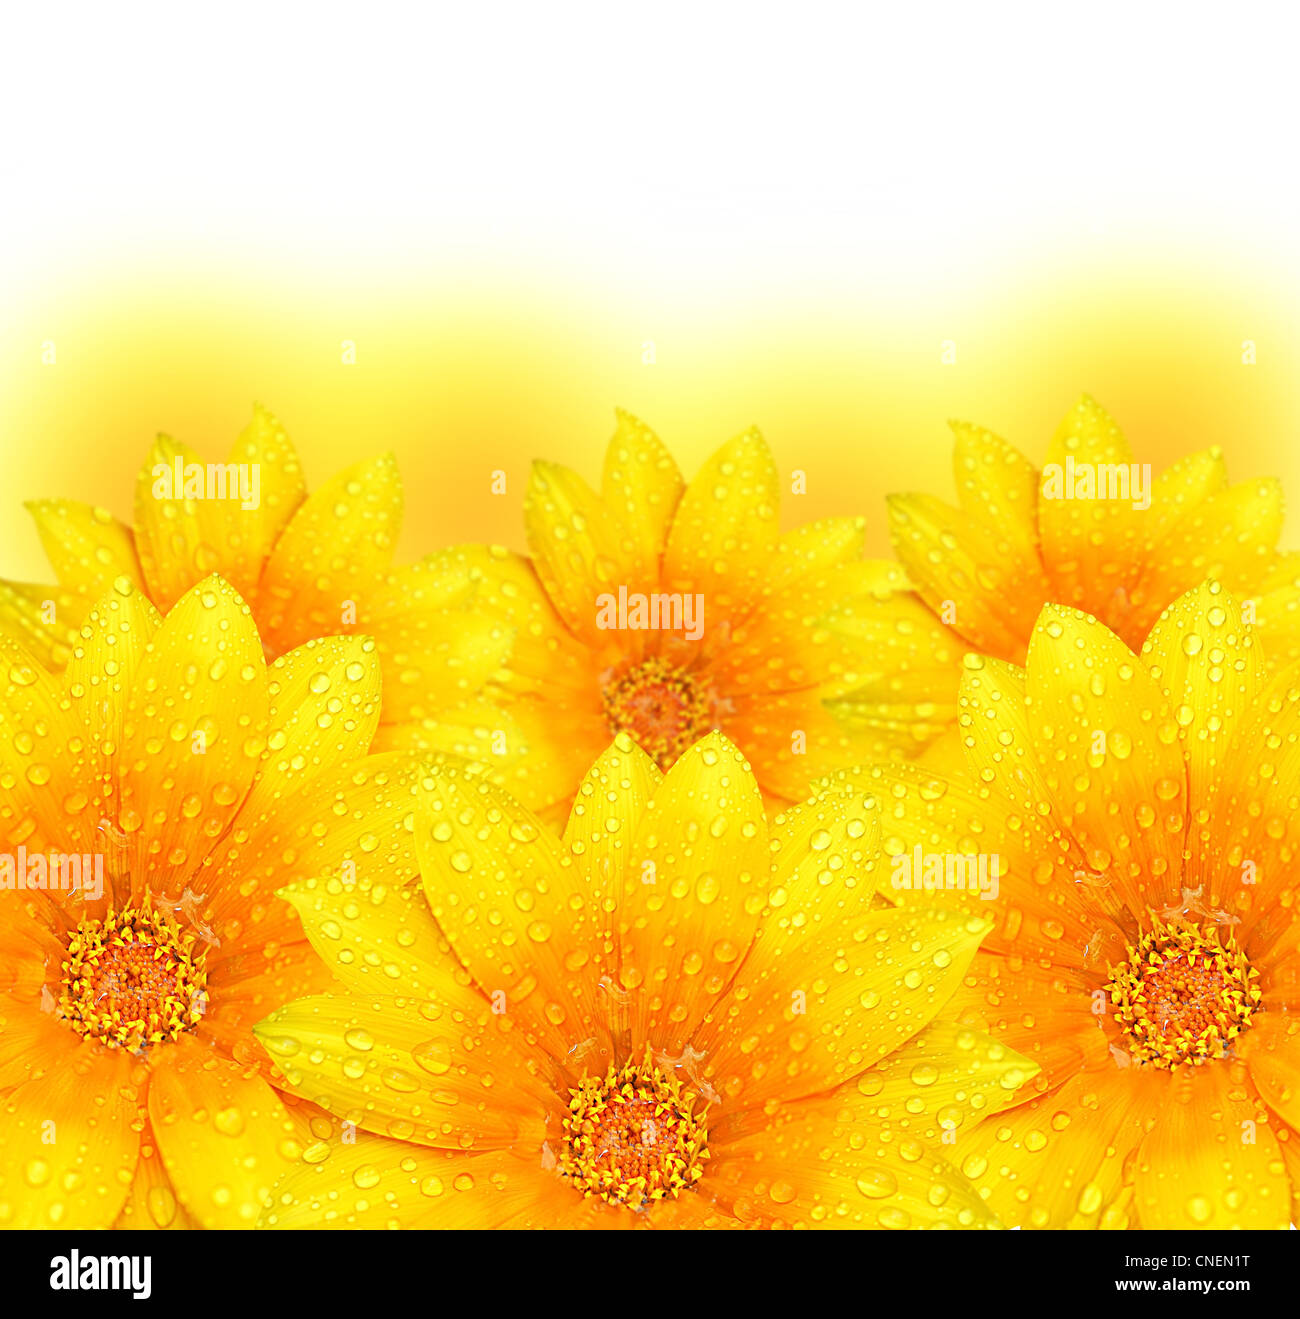 Border Of Yellow Flowers Stock Photos Border Of Yellow Flowers